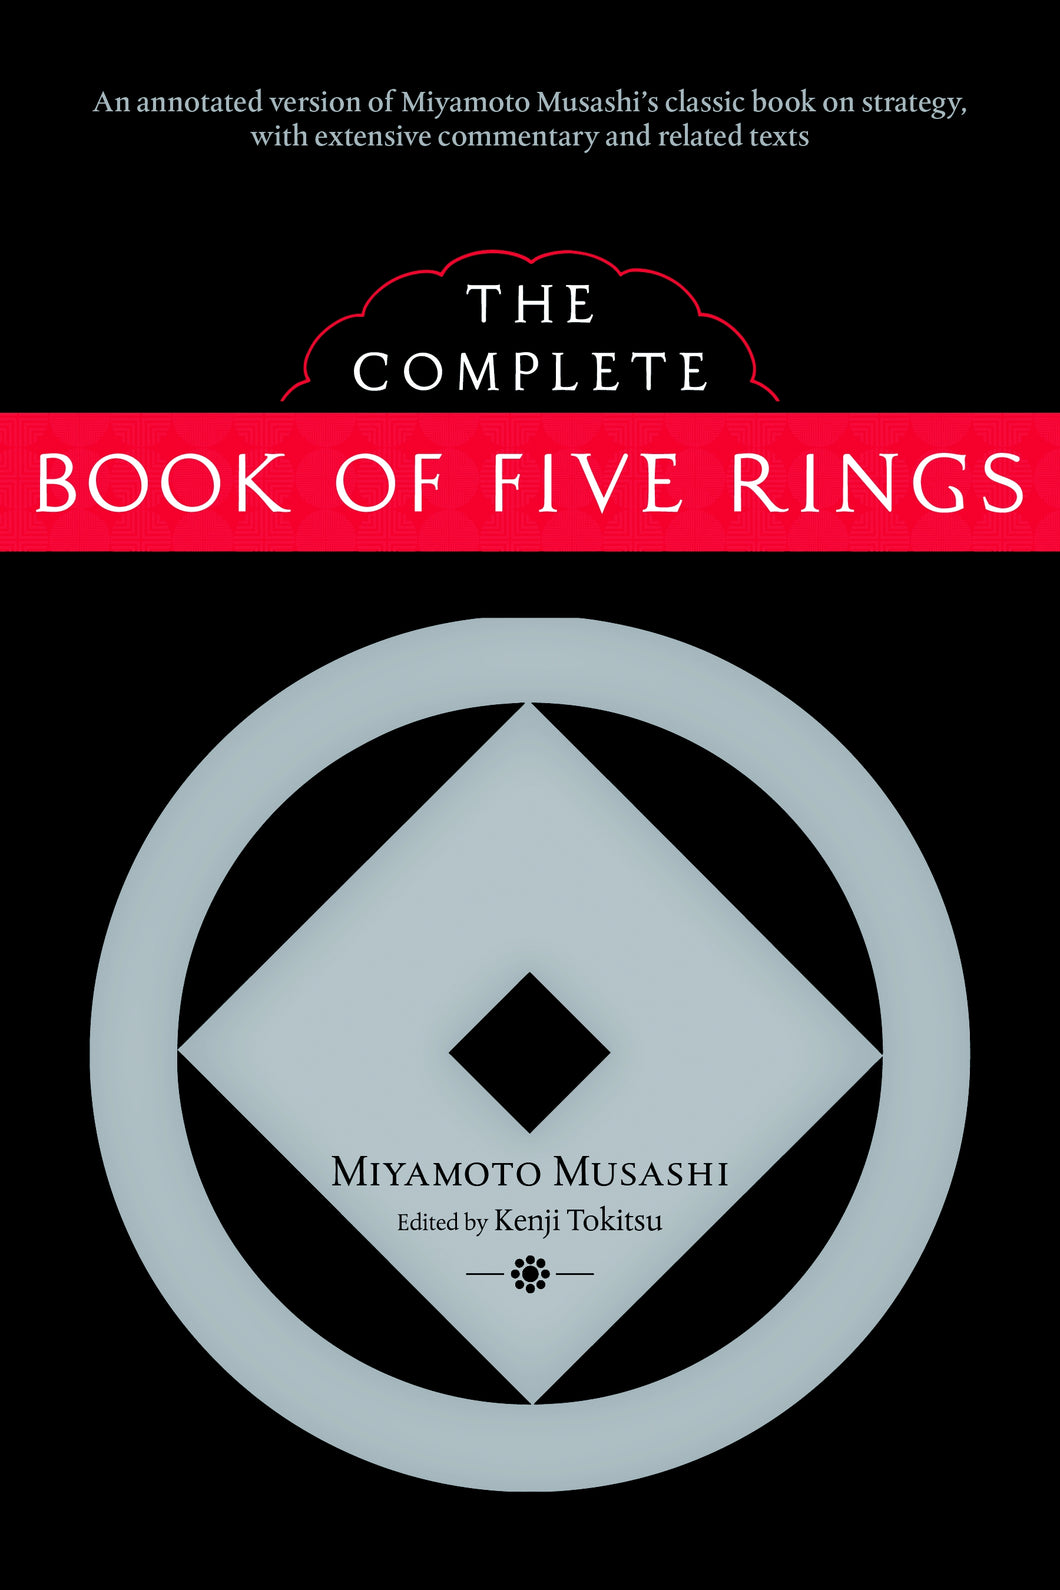 THE COMPLETE BOOK OF FIVE RINGS - Miyamoto Musashi